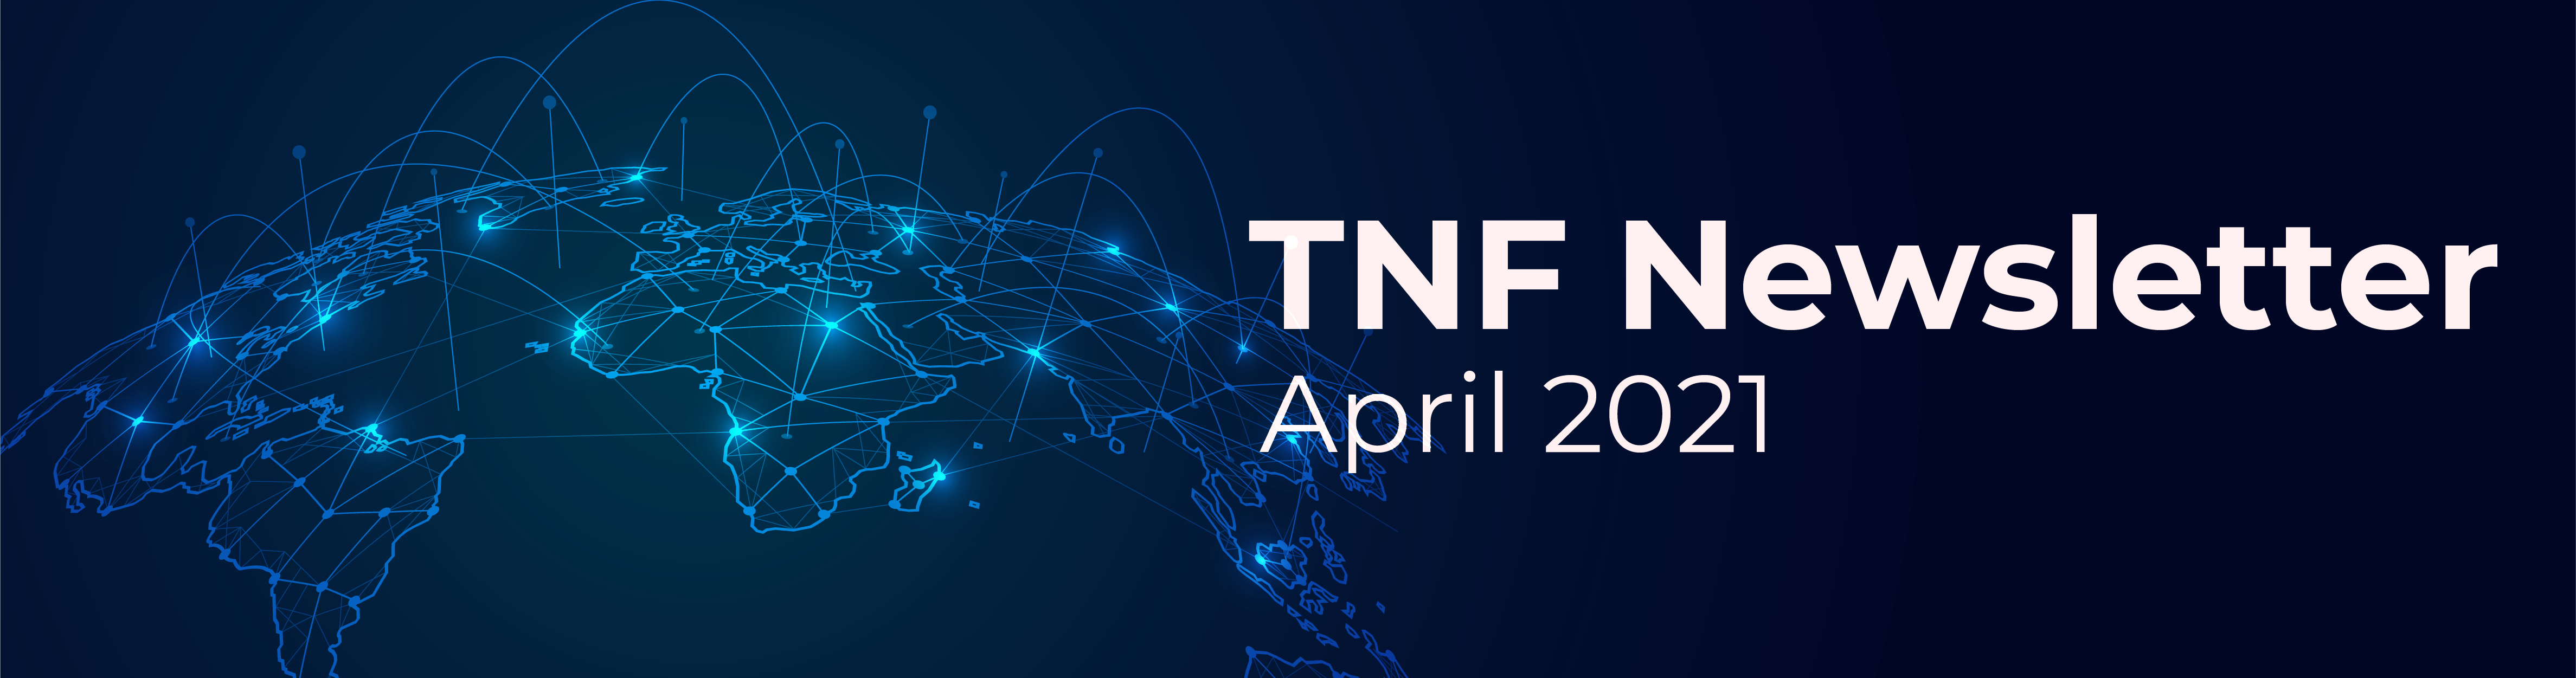 TNF Newsletter - April 2021